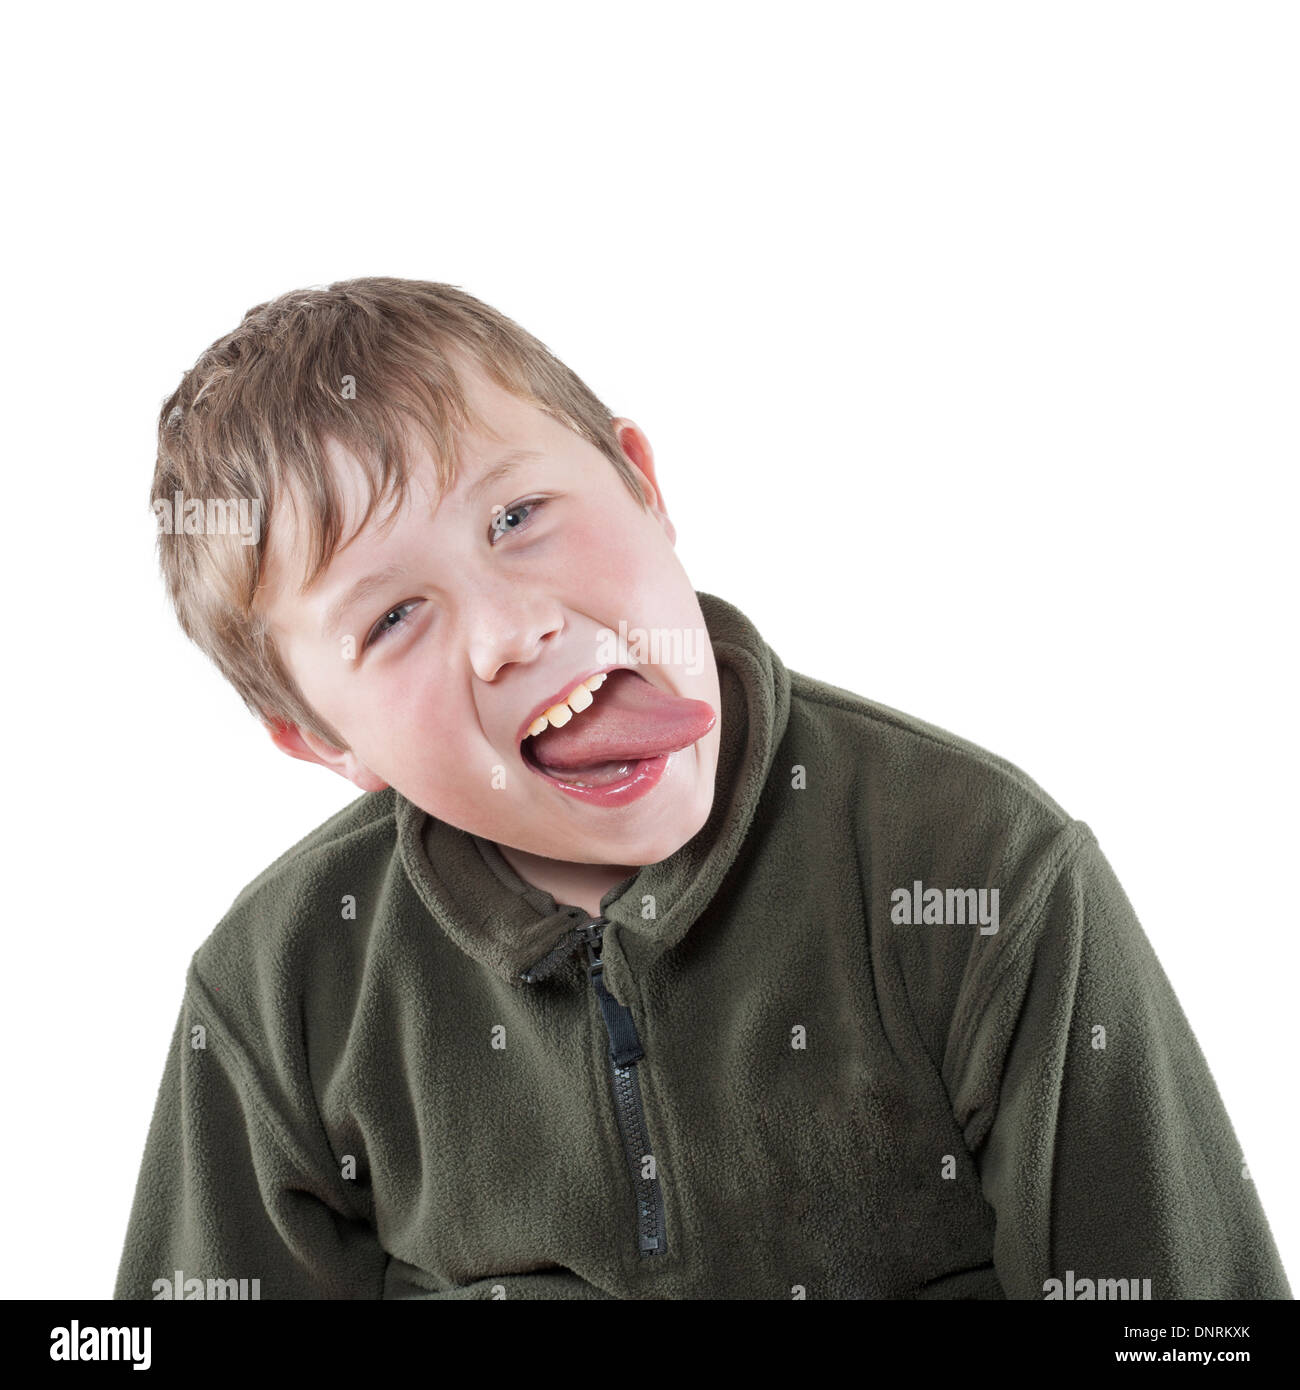 A 10 year old boy sticking his tongue out in the Uk Stock Photo